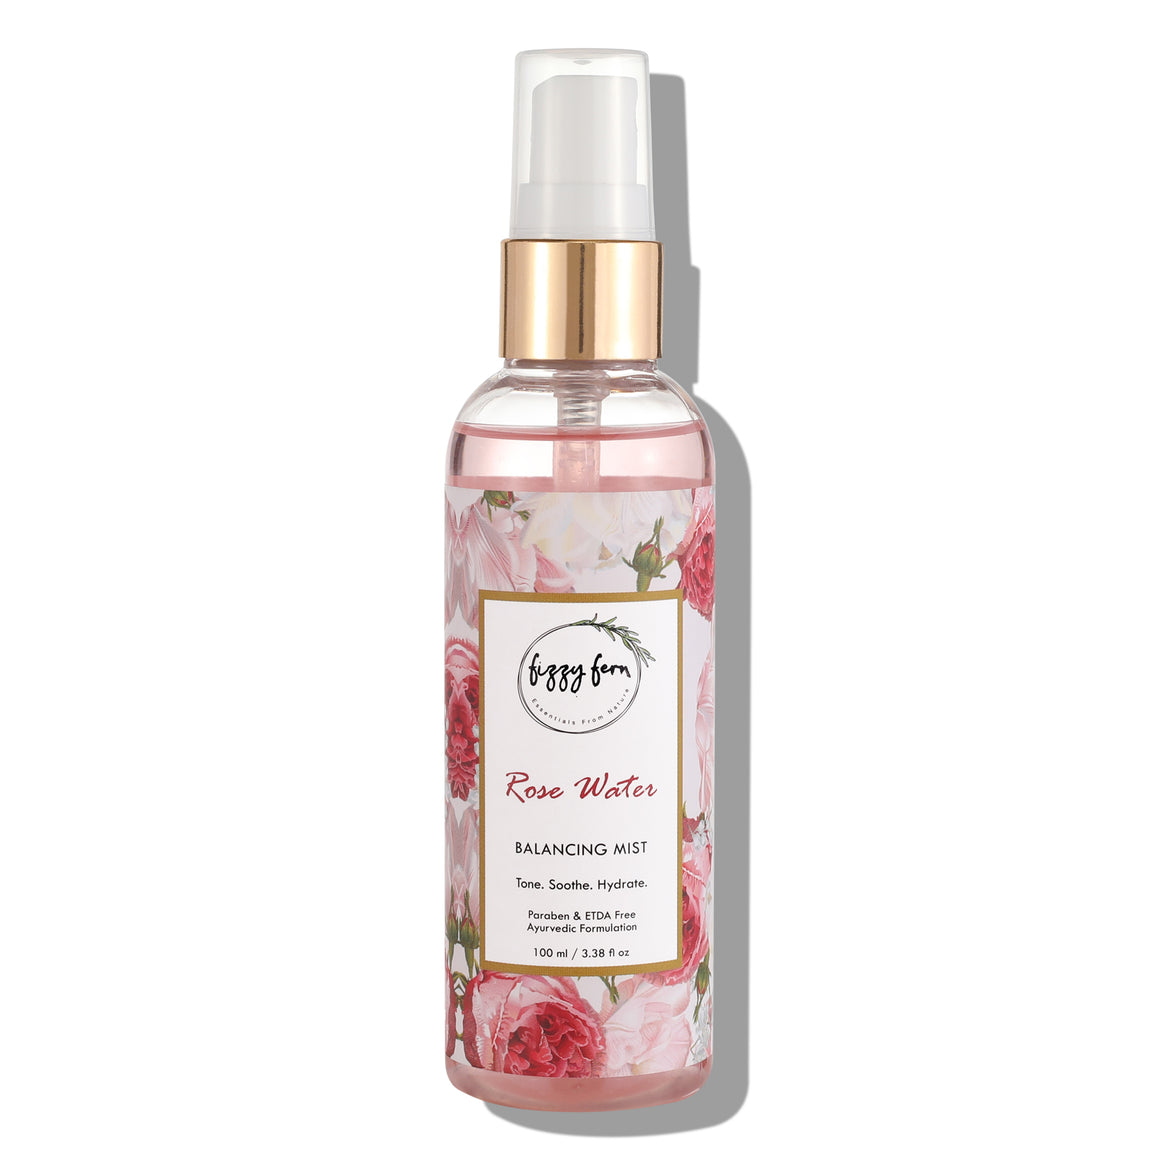 Rose Water Balancing Mist with Cardamom & Aloe Vera